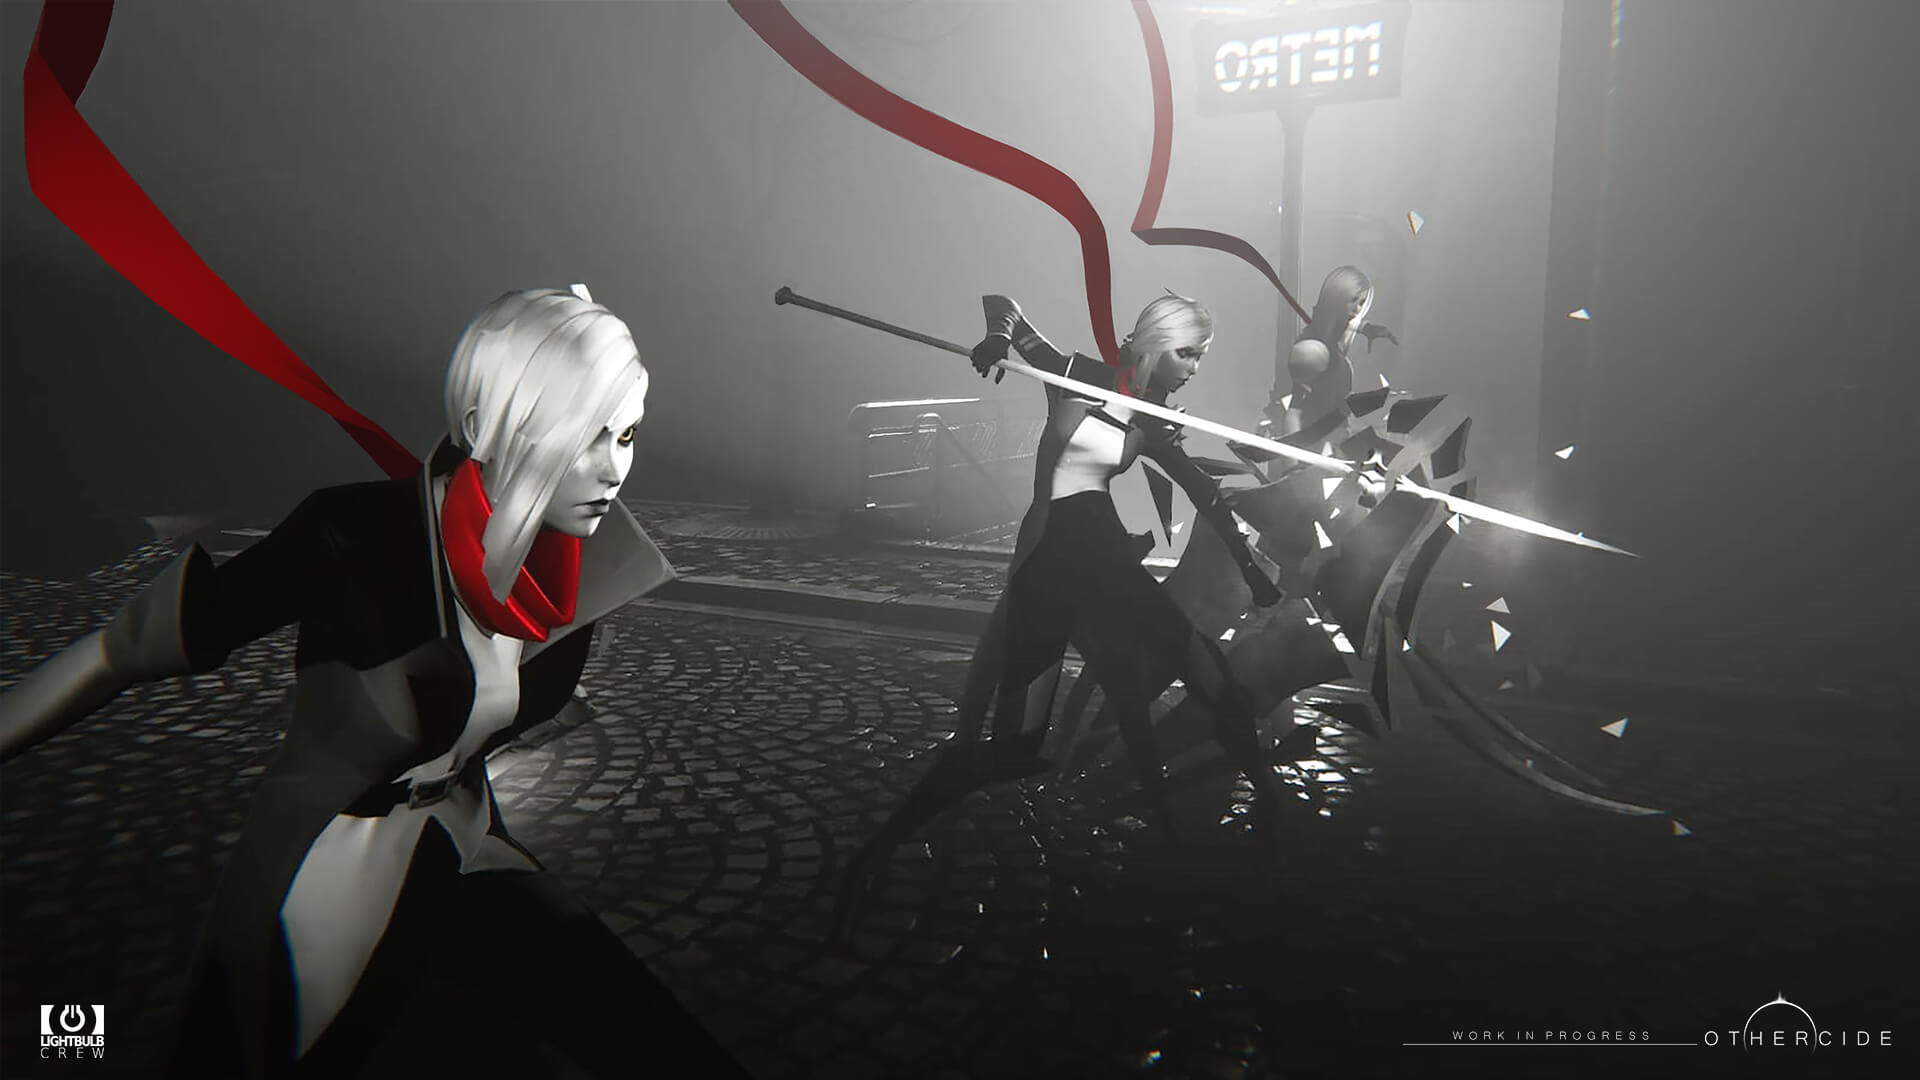 Othercide - Turn-based tactical game